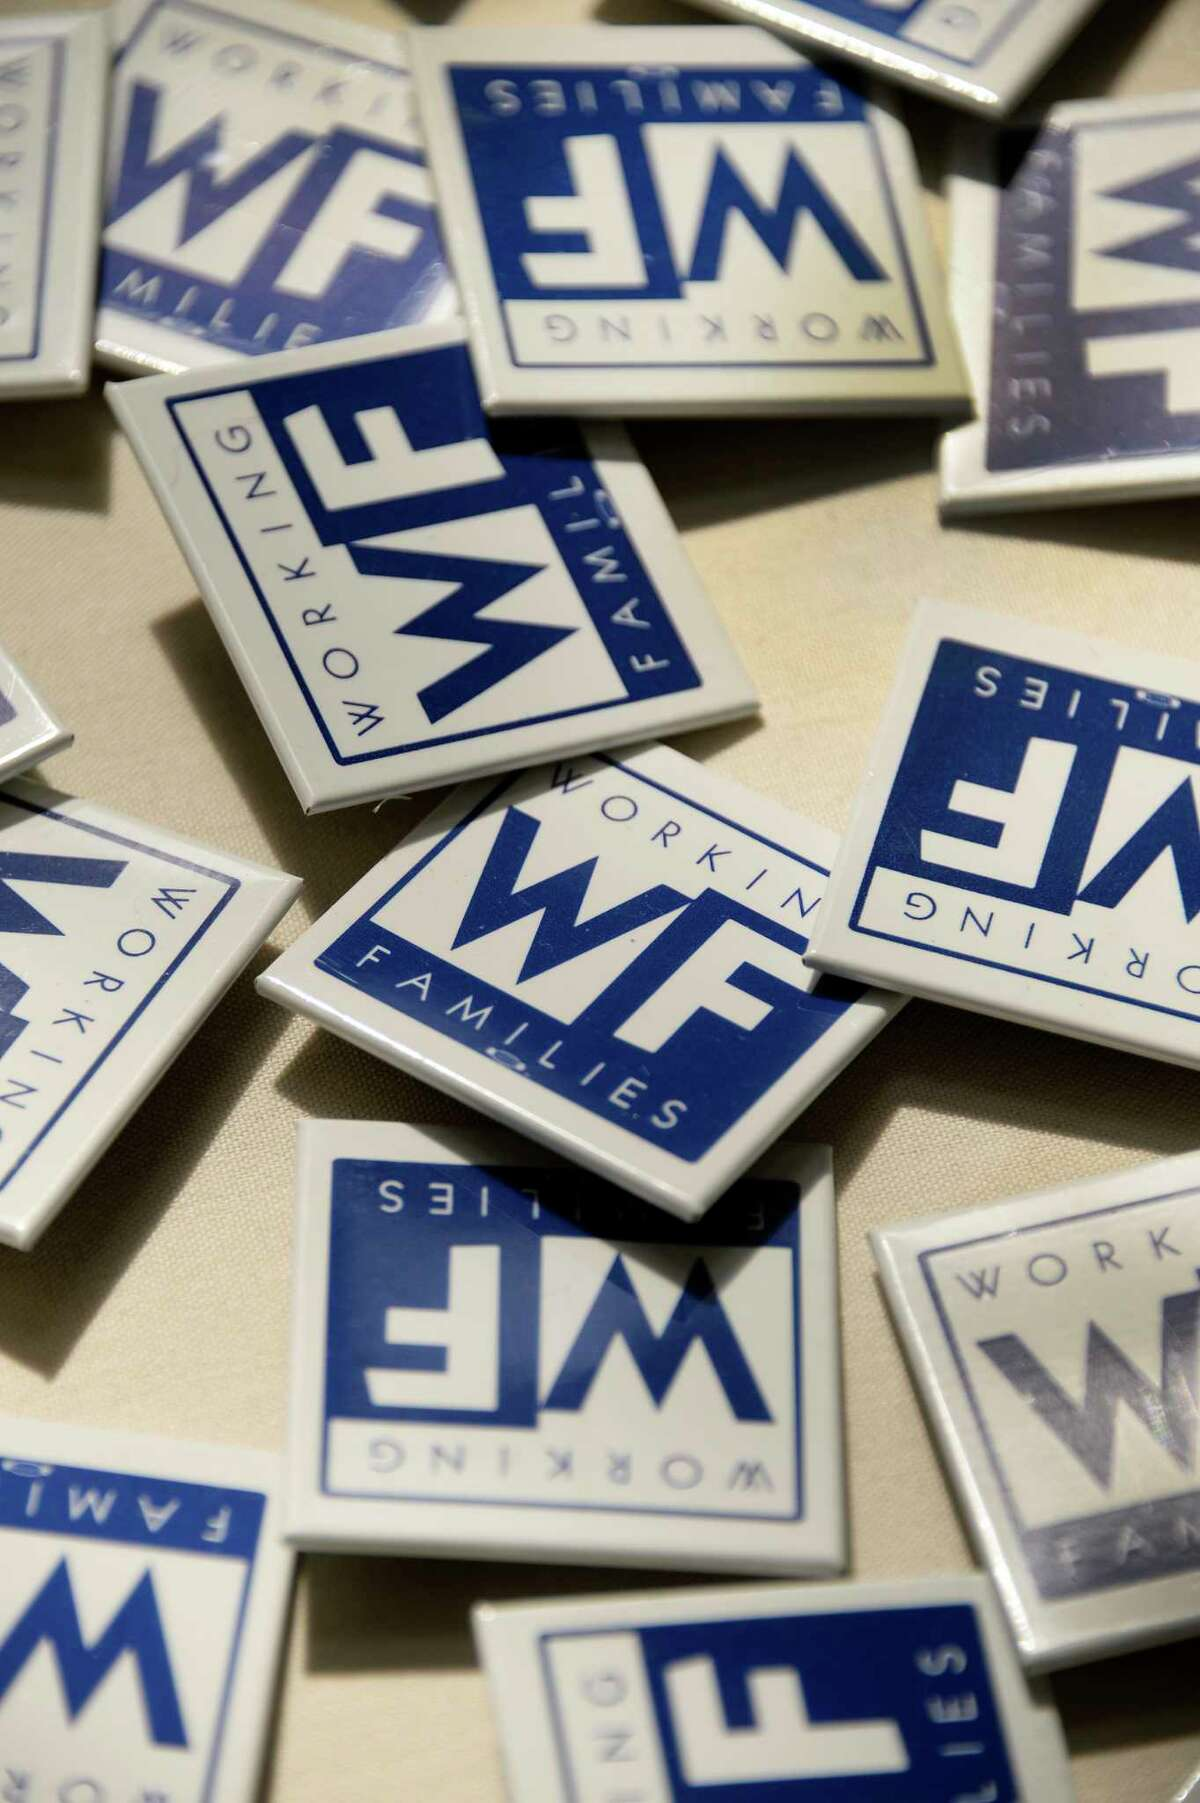 Working Families Party buttons at the sign in table at their conference Saturday April 14, 2017 in Albany, NY. (John Carl D'Annibale/Times Union)